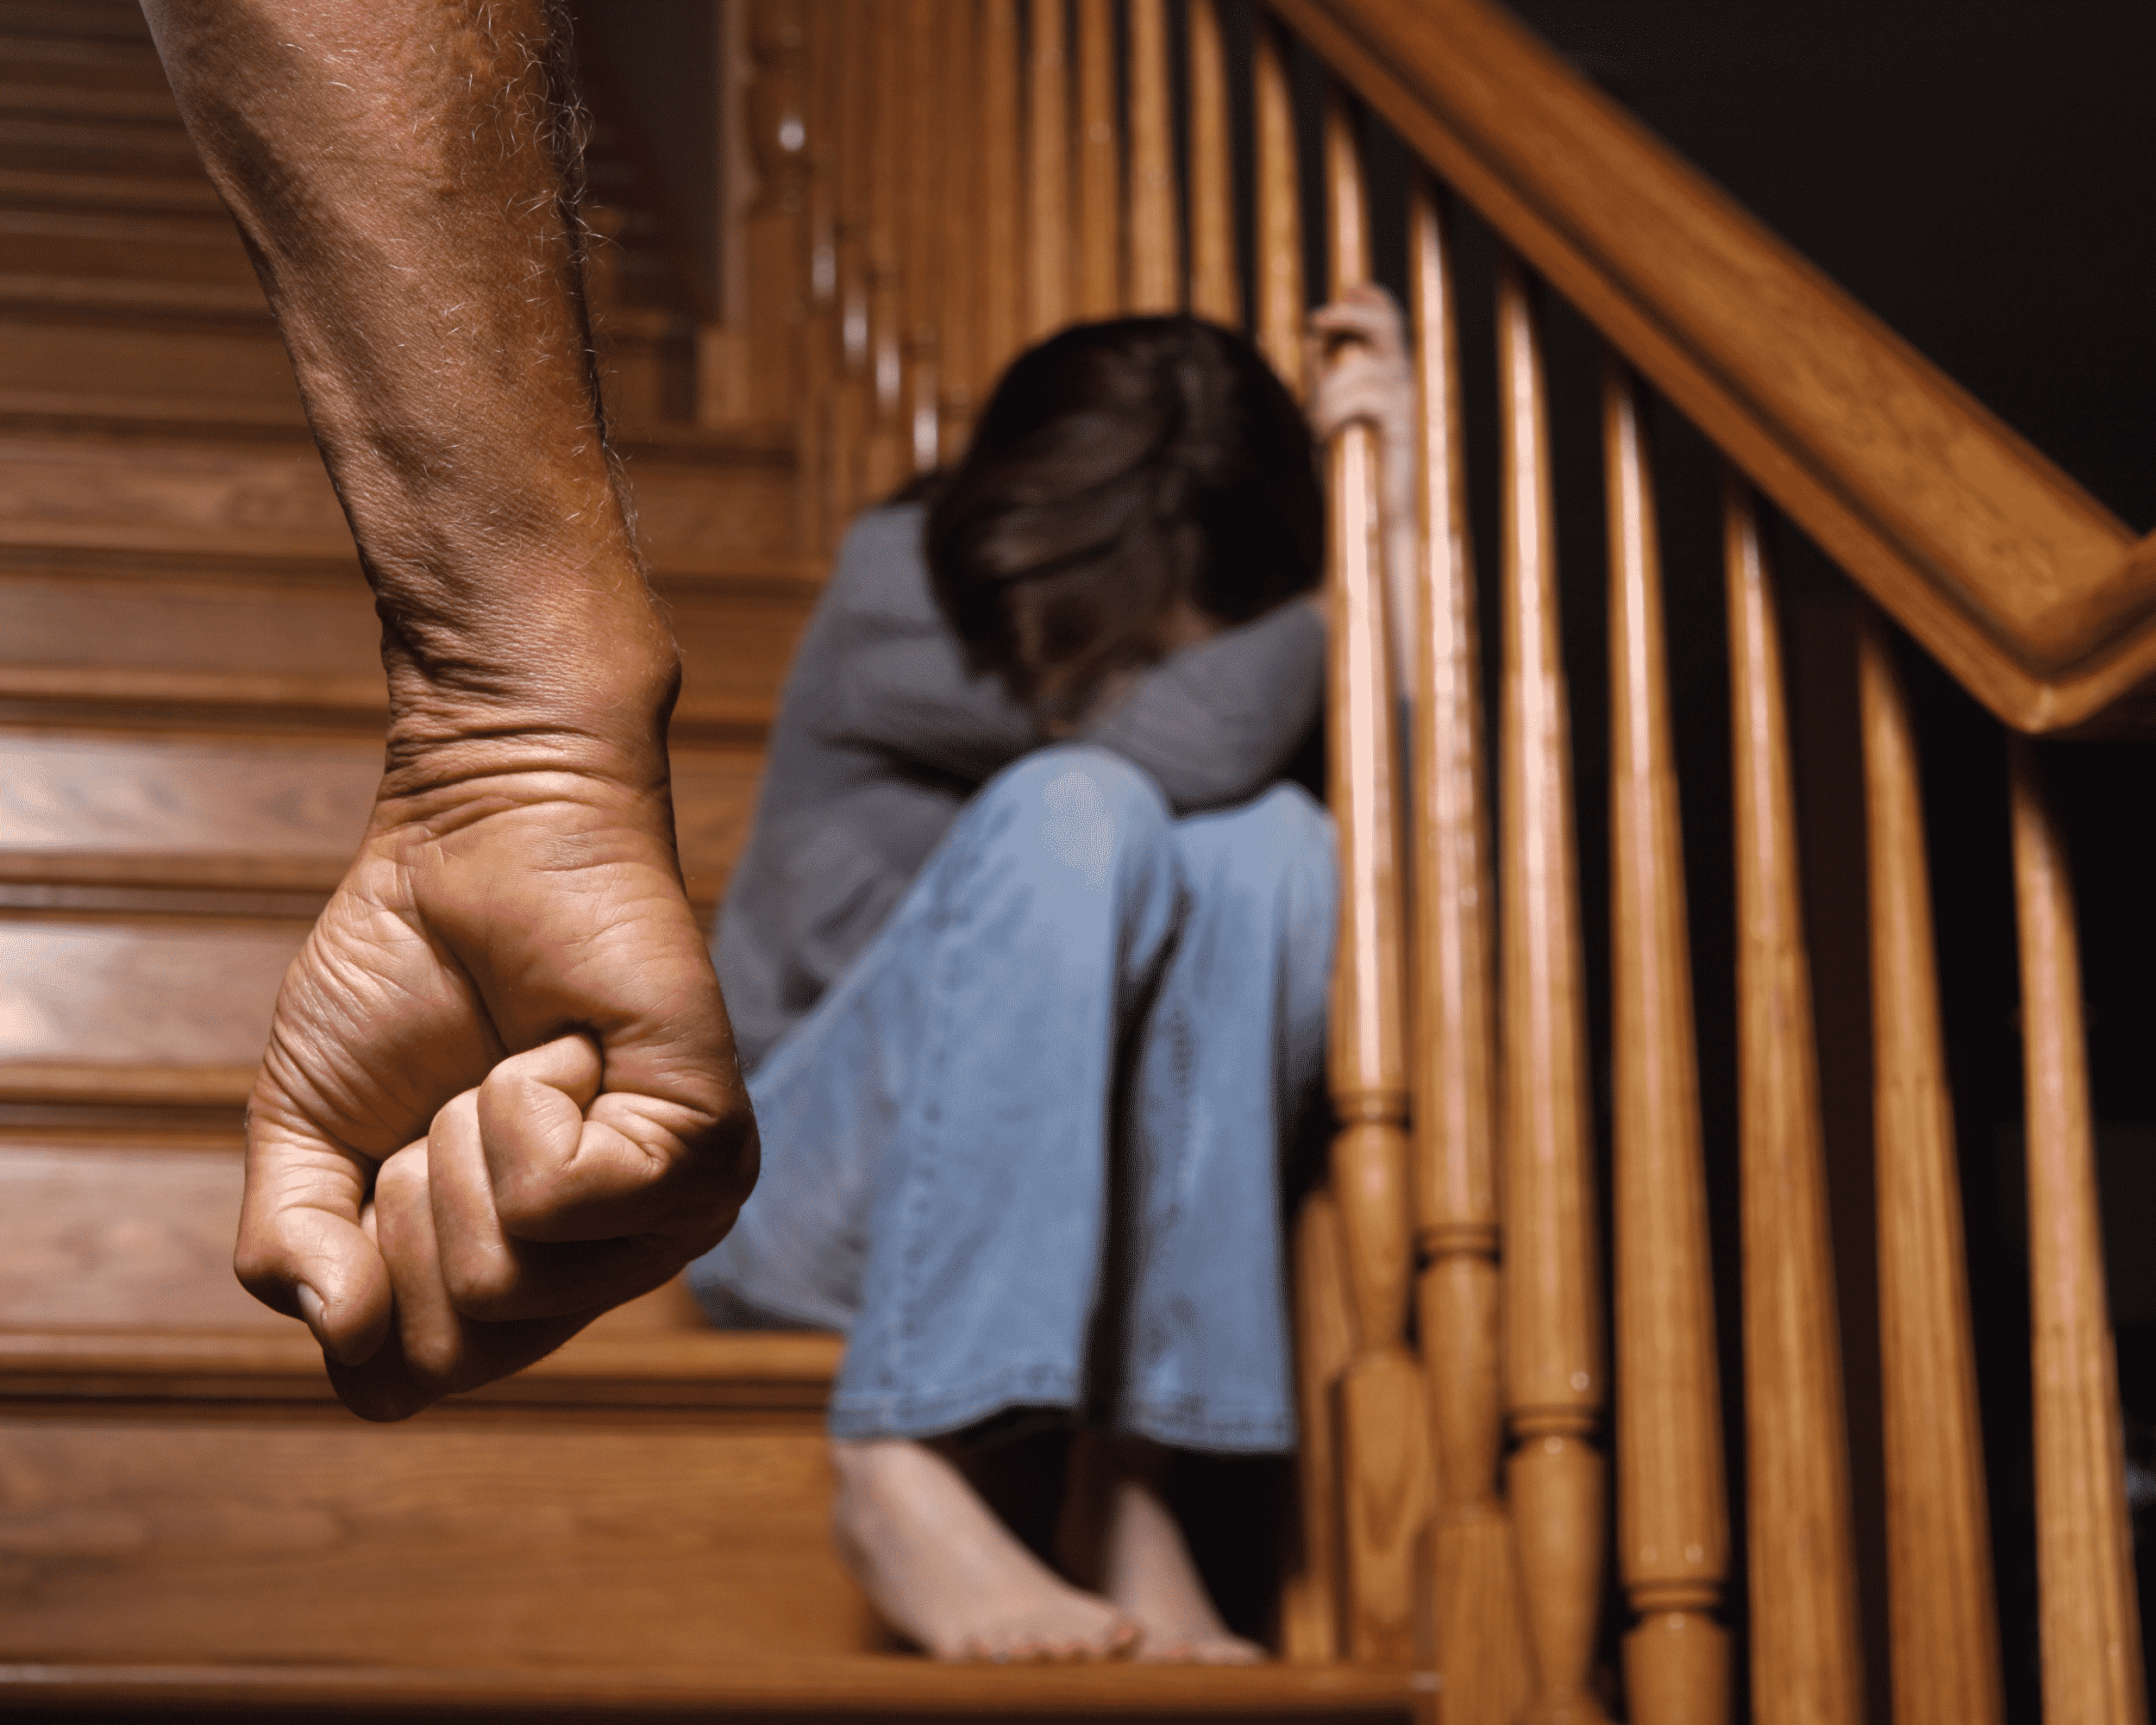 Safety Alert: Child Abuse and Neglect